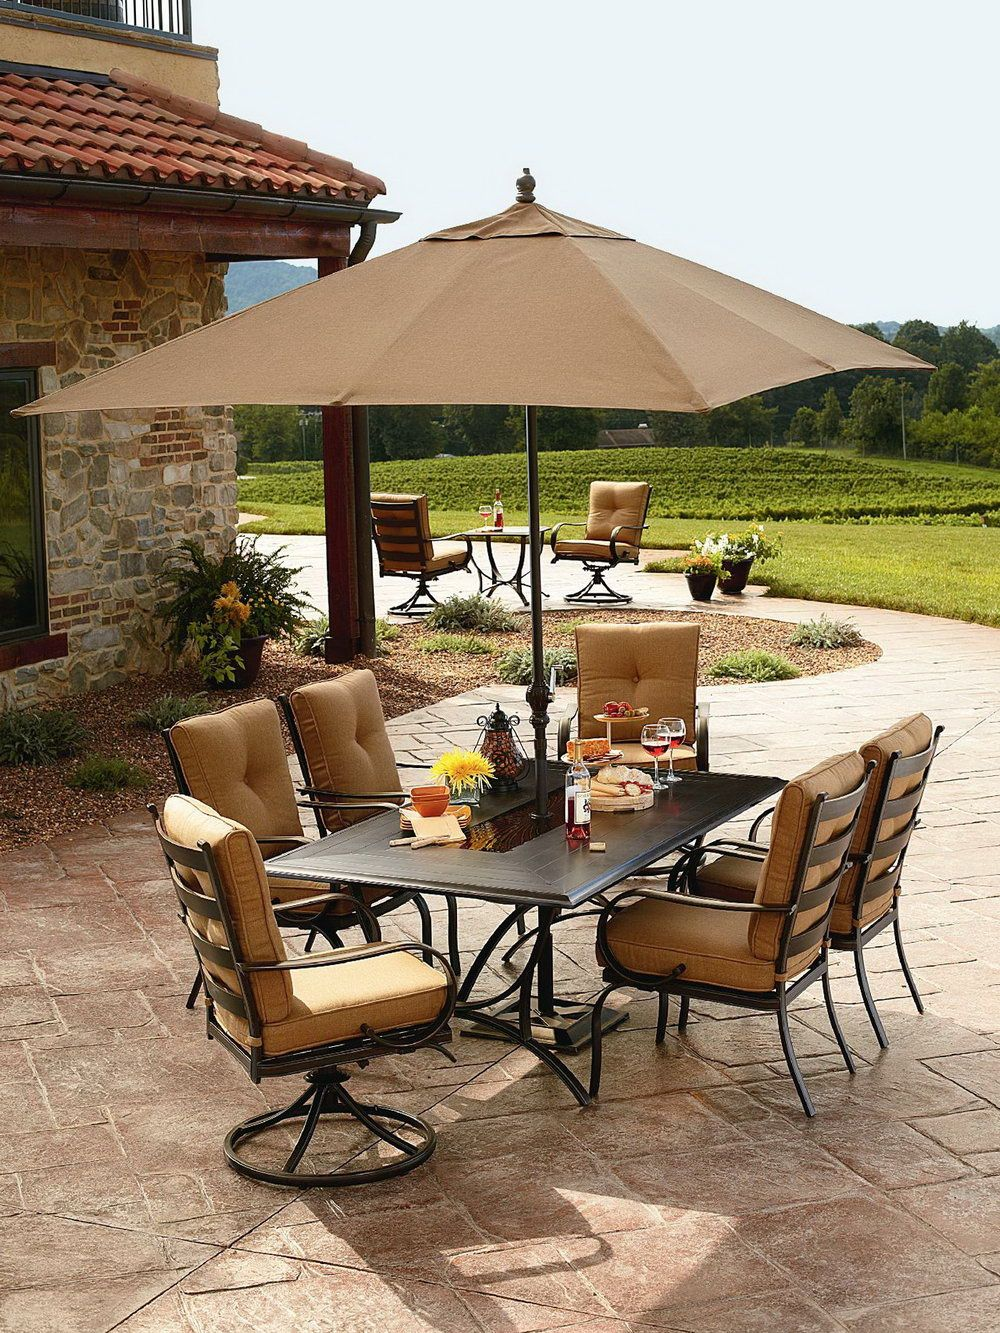 Superb Cool Luxury Watsons Patio Furniture 31 For Home Decoration Ideas With Watsons  Patio Furniture Check More